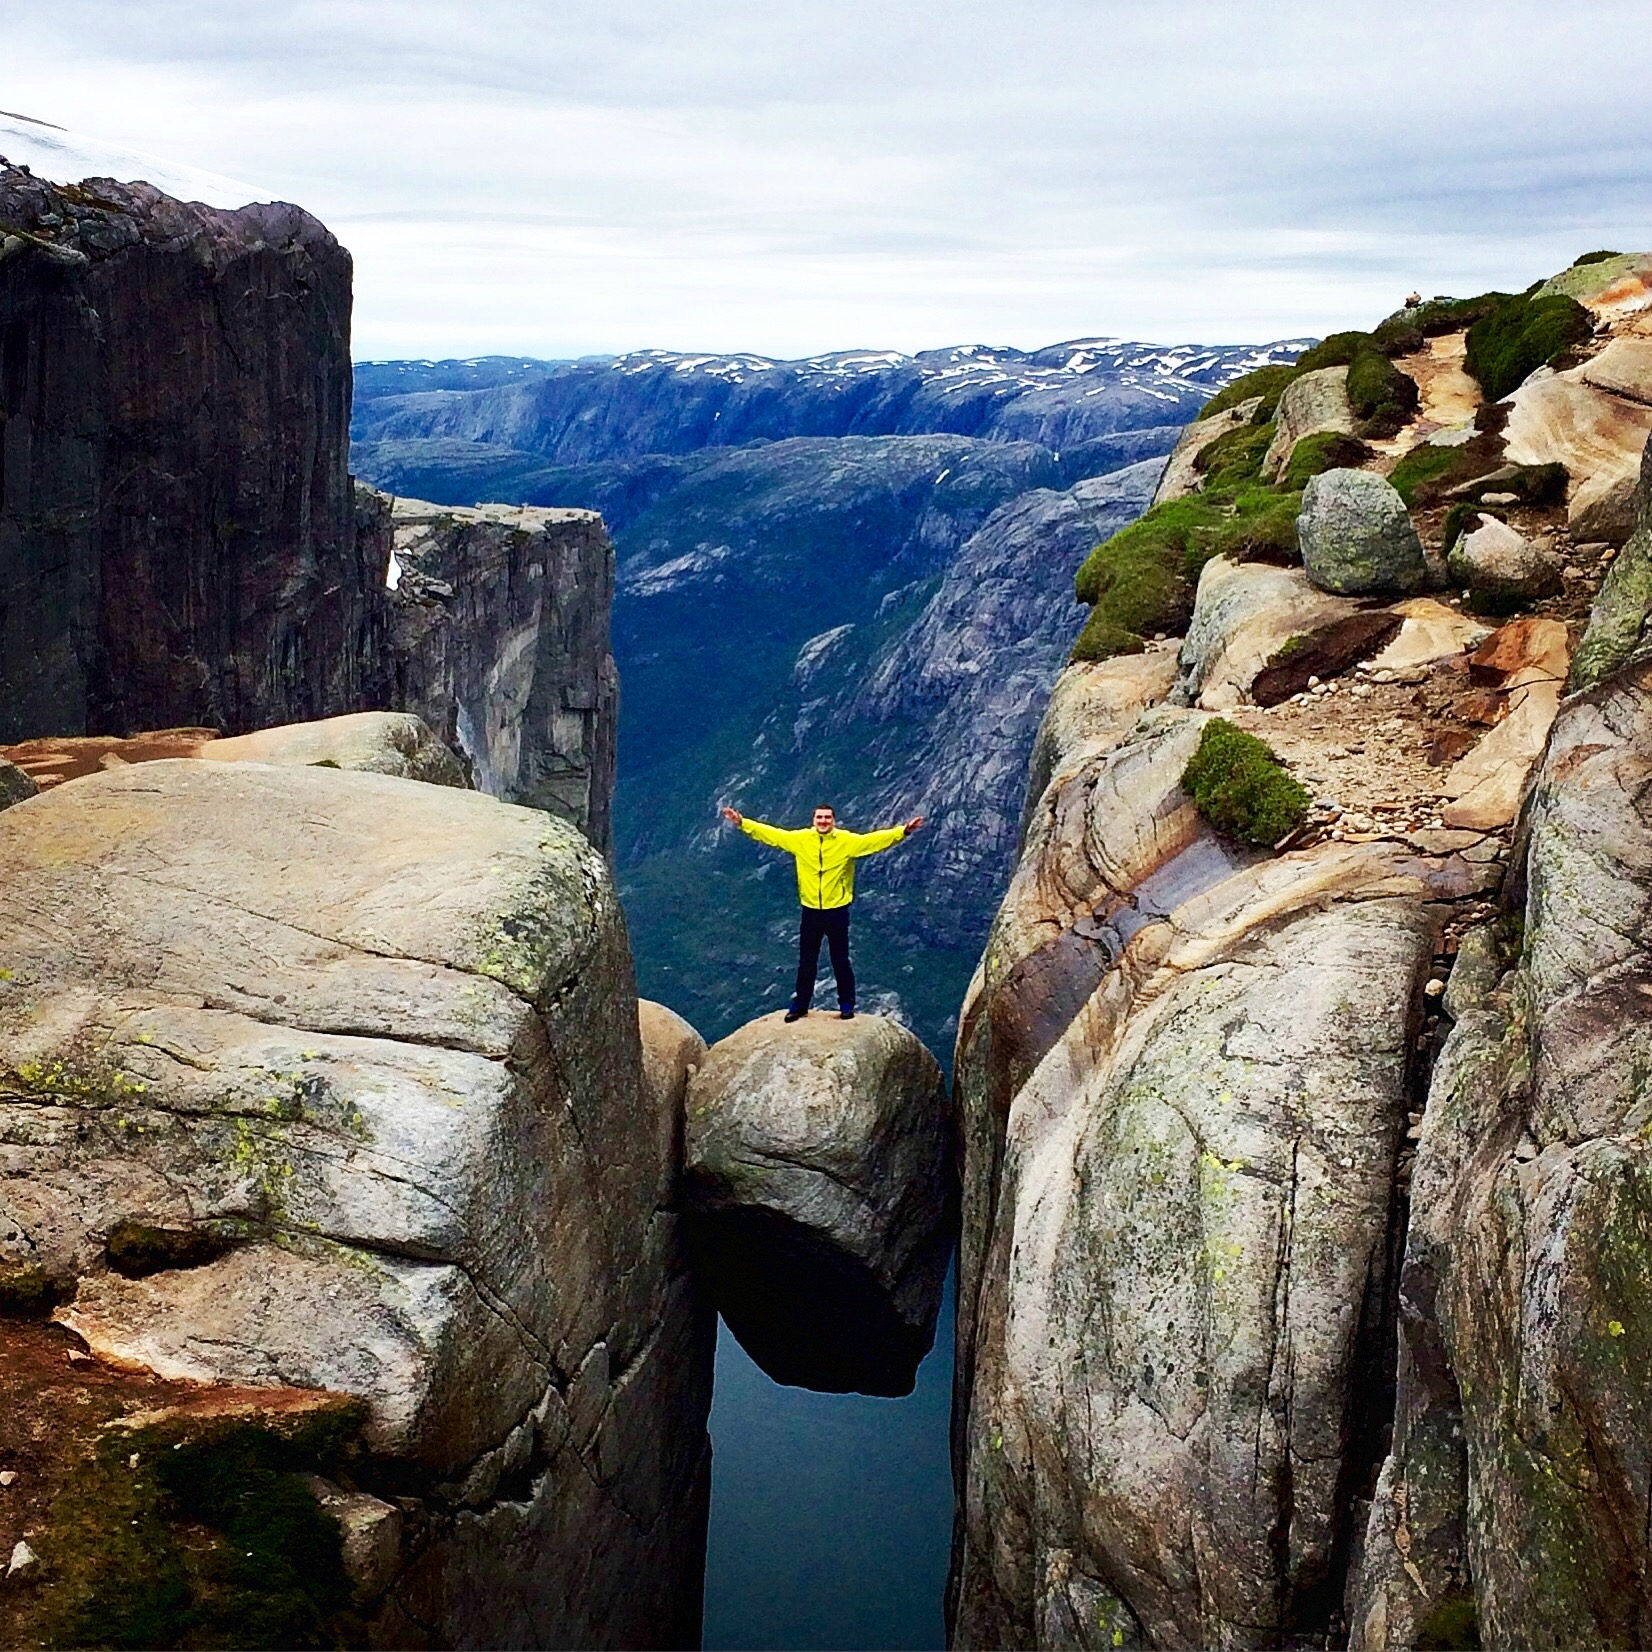 Defy Gravity at Kjeragbolten - Must Visit Place In Stavanger Region, Norway